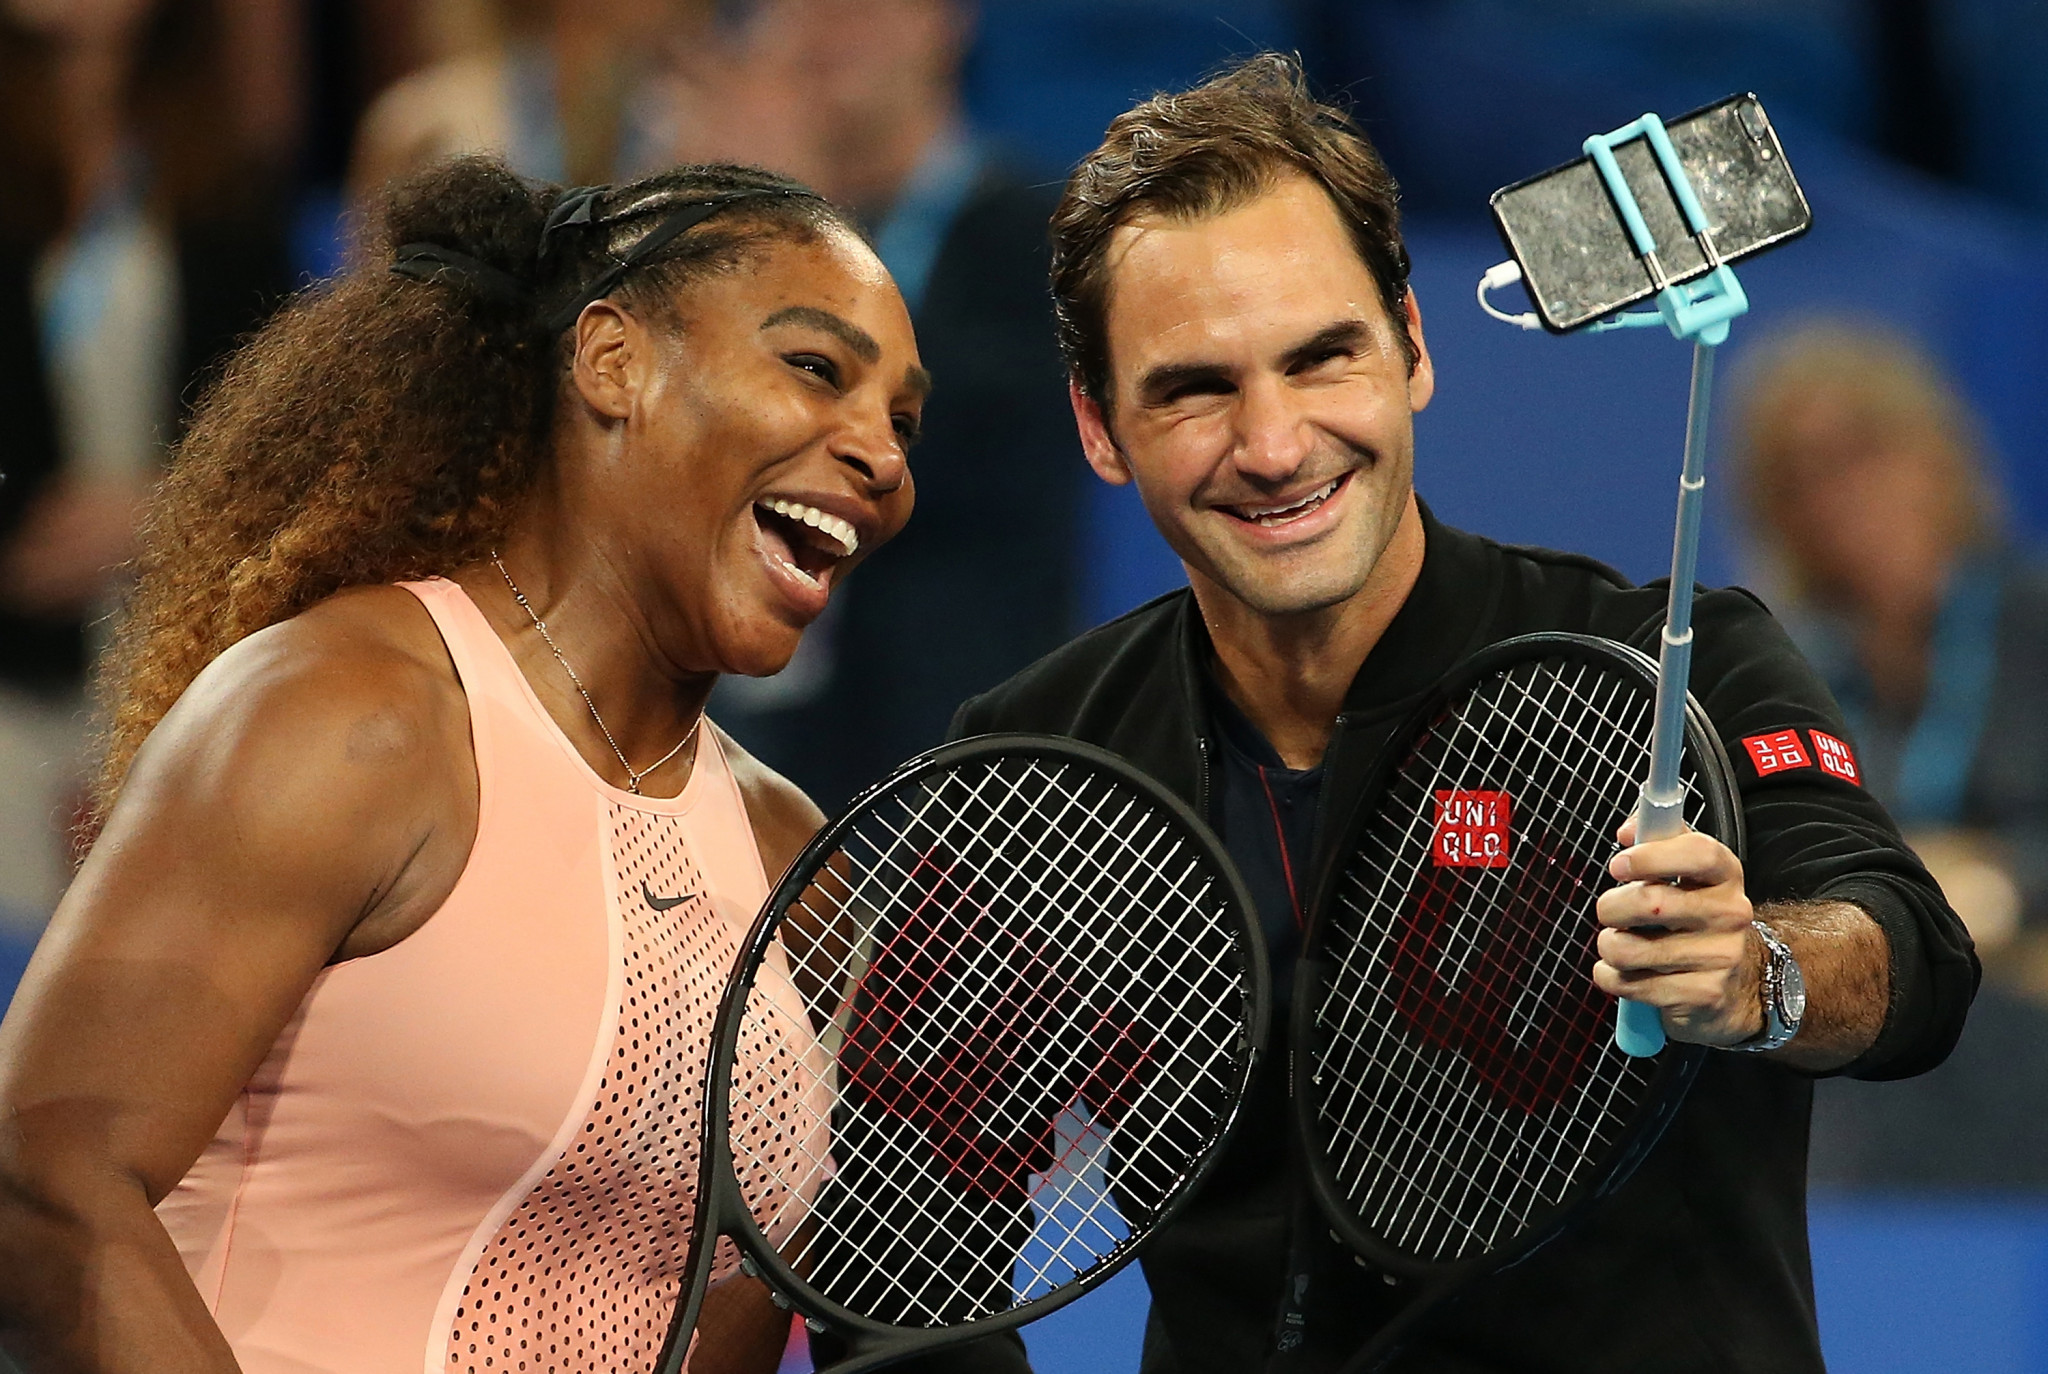 Serena Williams and Roger Federer played against each other competitively for the first time in January's Hopman Cup ©Getty Images